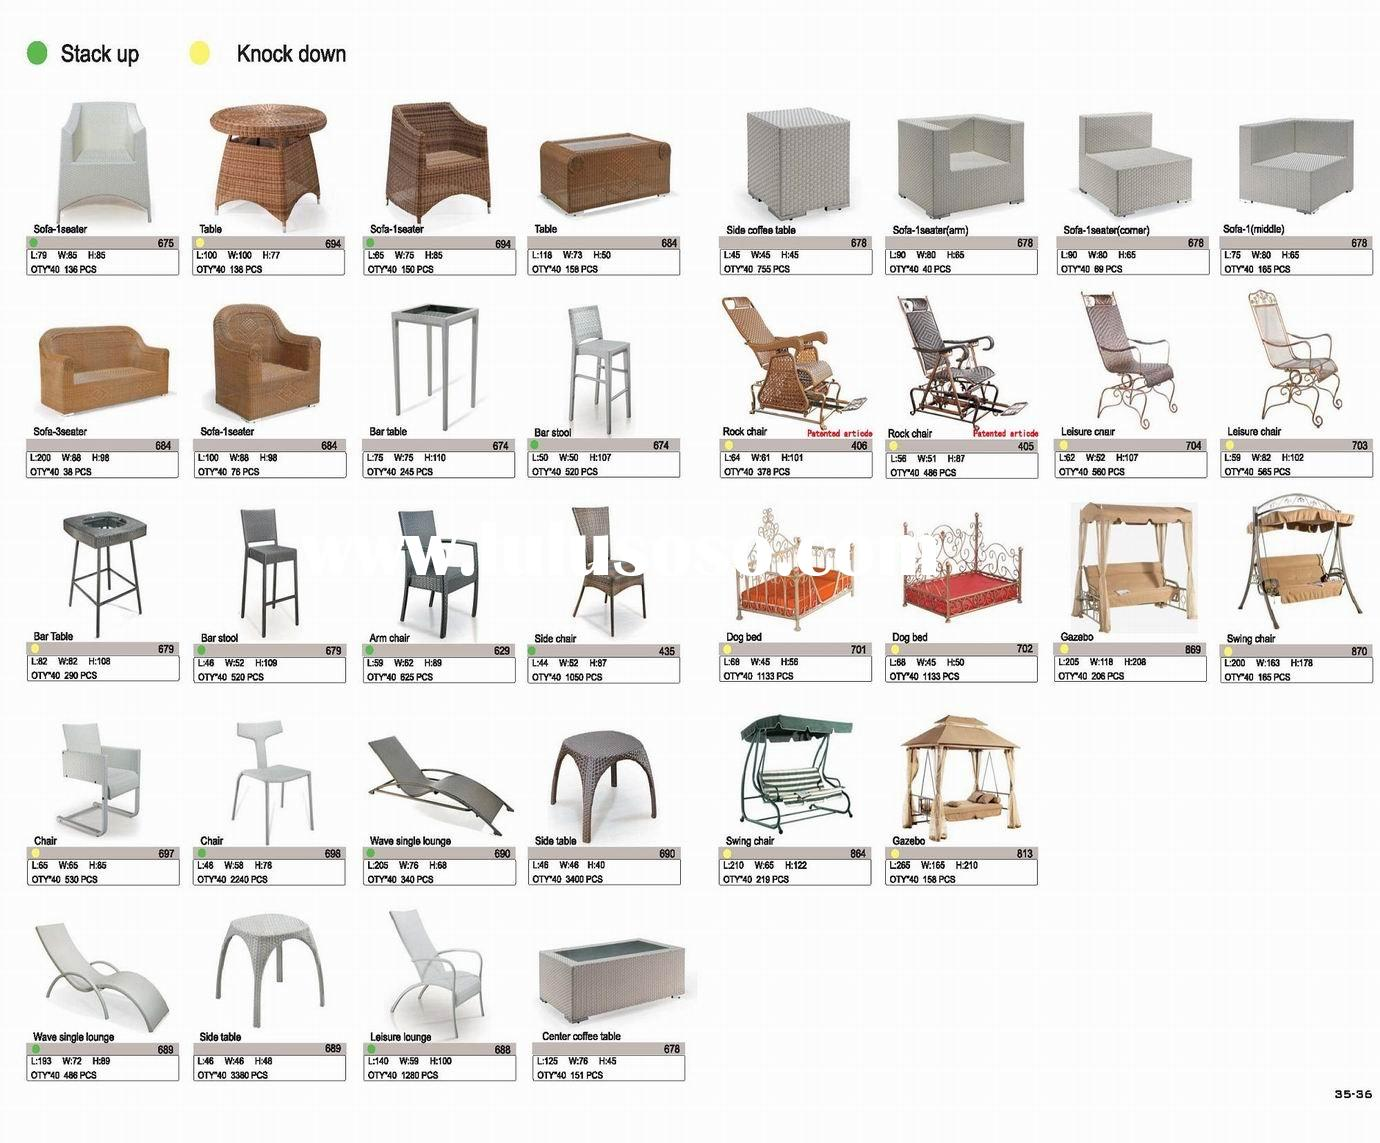 rattan leisure chair and table set sofa set bar table and stool set center side table rock chair gaz